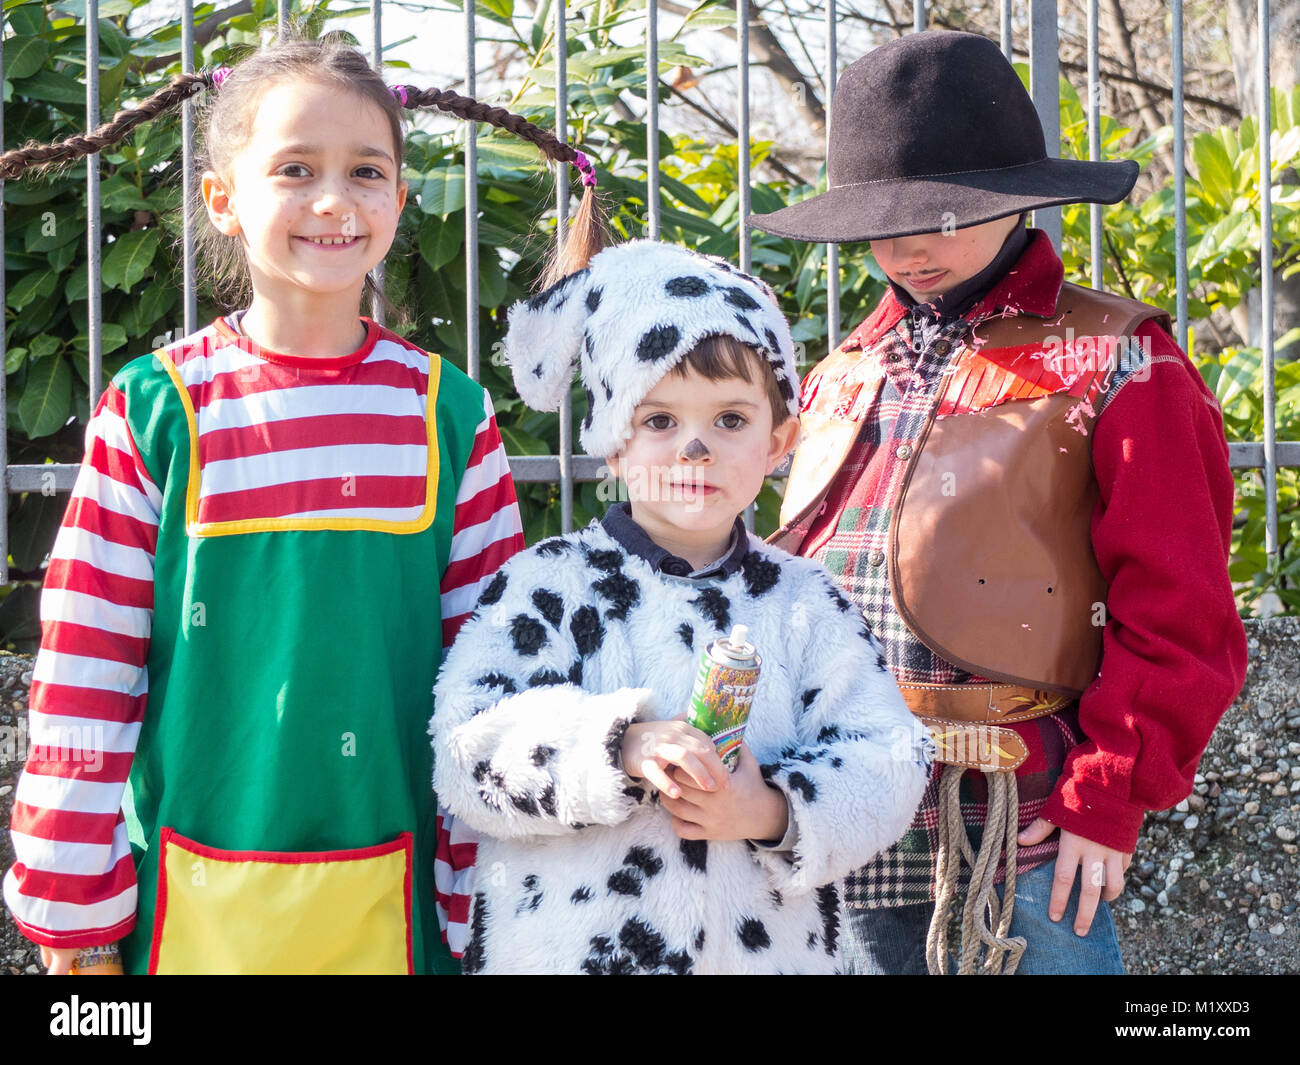 children dressed in carnival costumes on the outside to celebrate masquerade - Stock Image